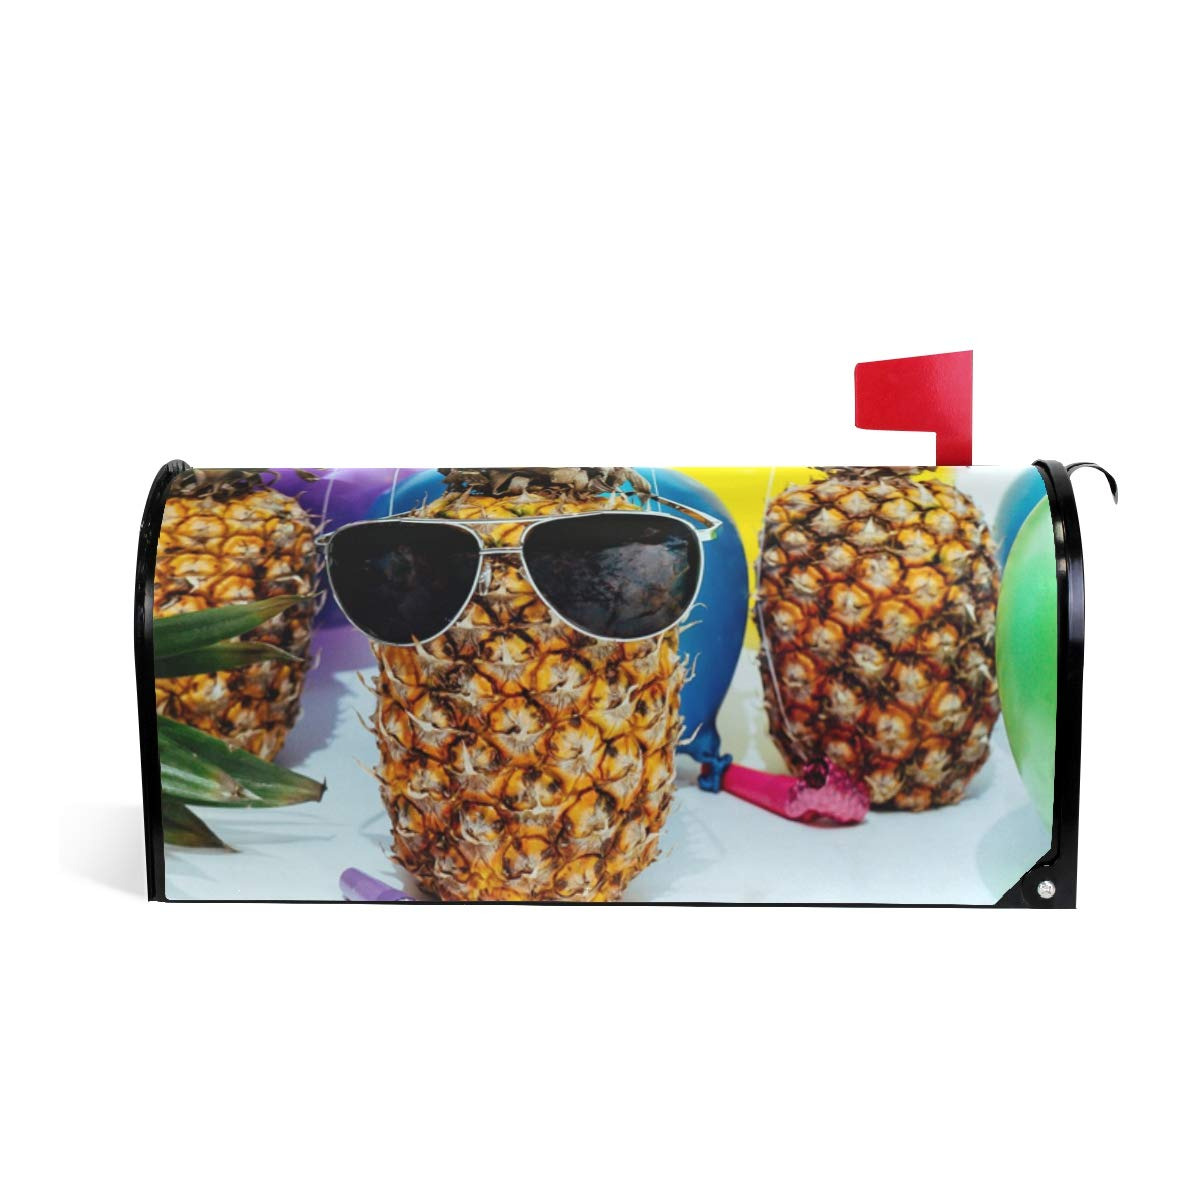 HEOEH Party Pineapple Sunglass Airball Magnetic Mailbox Cover Home Garden Decorations Oversized 25.5 x 20.8 inches